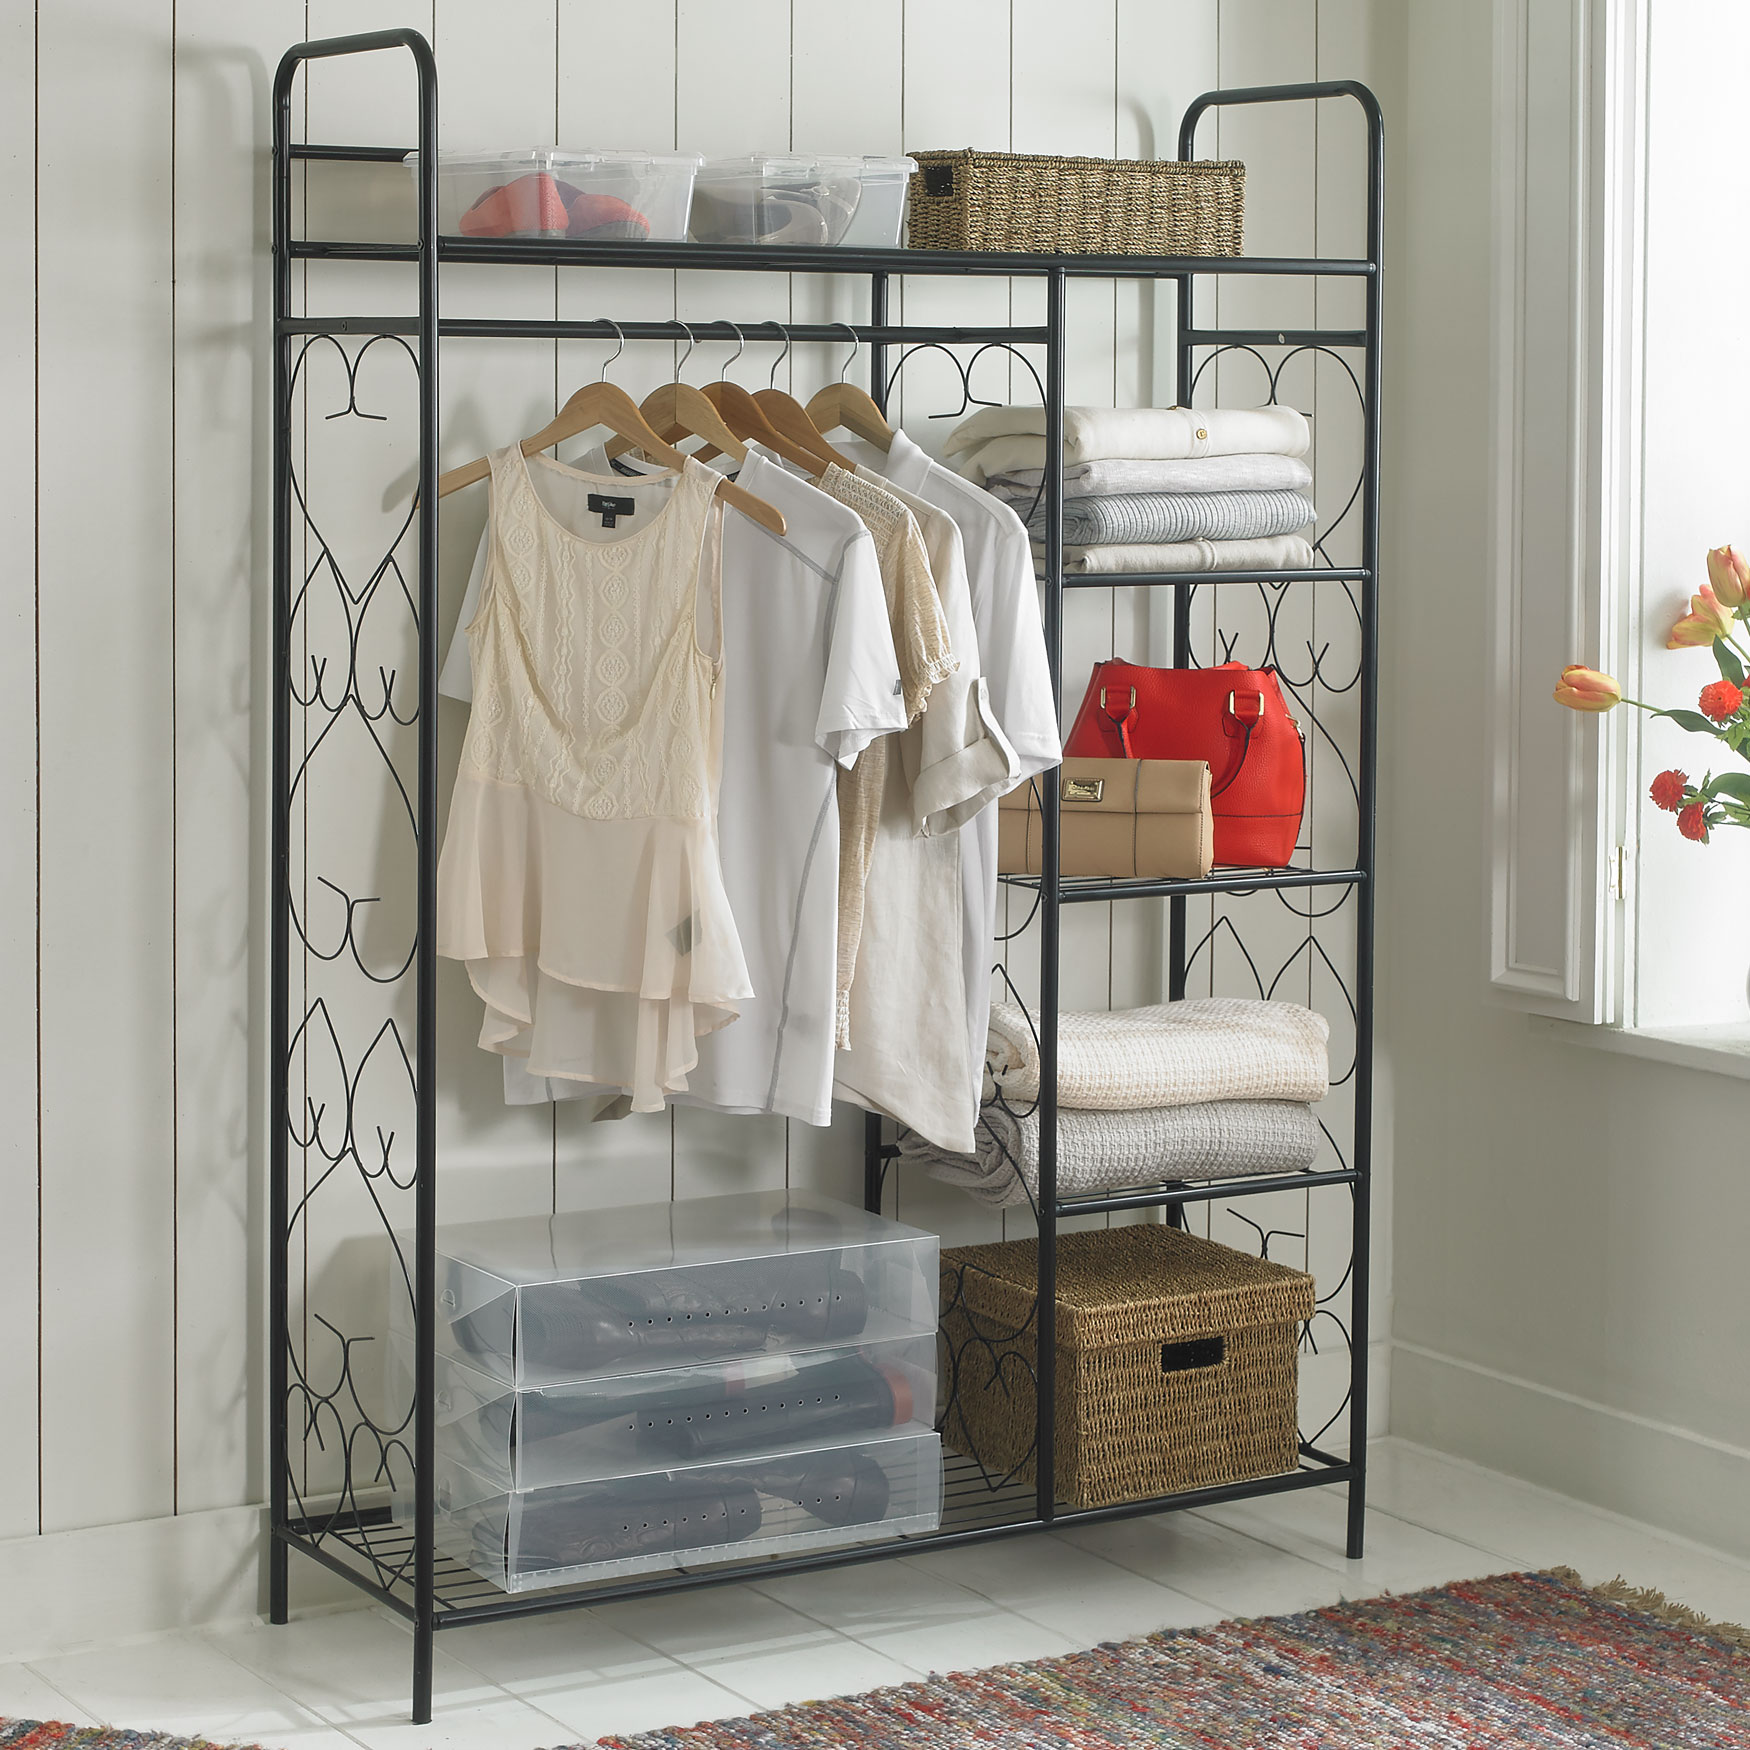 Frosty Mint BrylaneHome 5-Tier Metal Closet with Hanging Rod